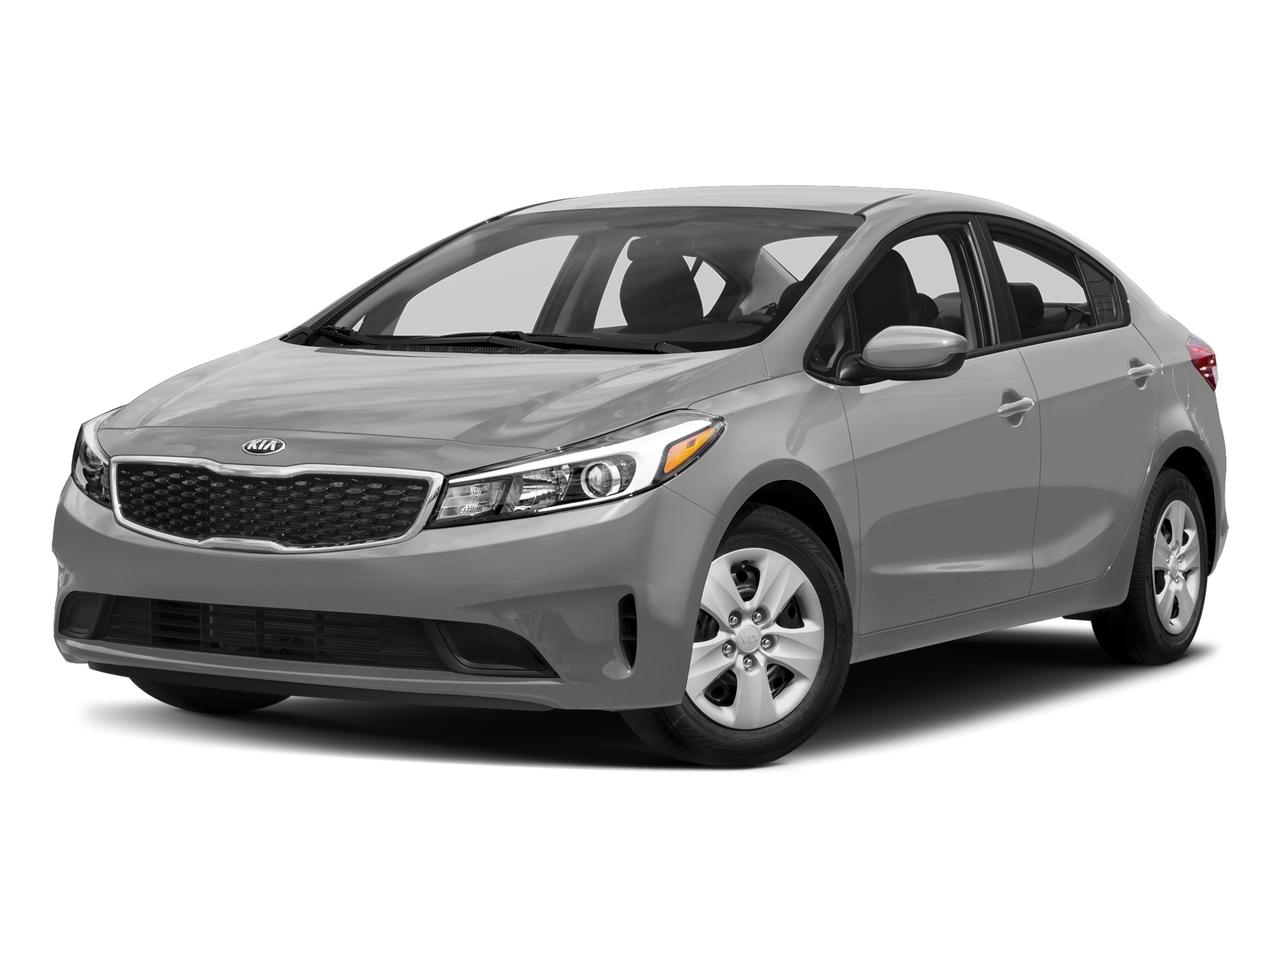 2017 Kia Forte Vehicle Photo in Tulsa, OK 74133